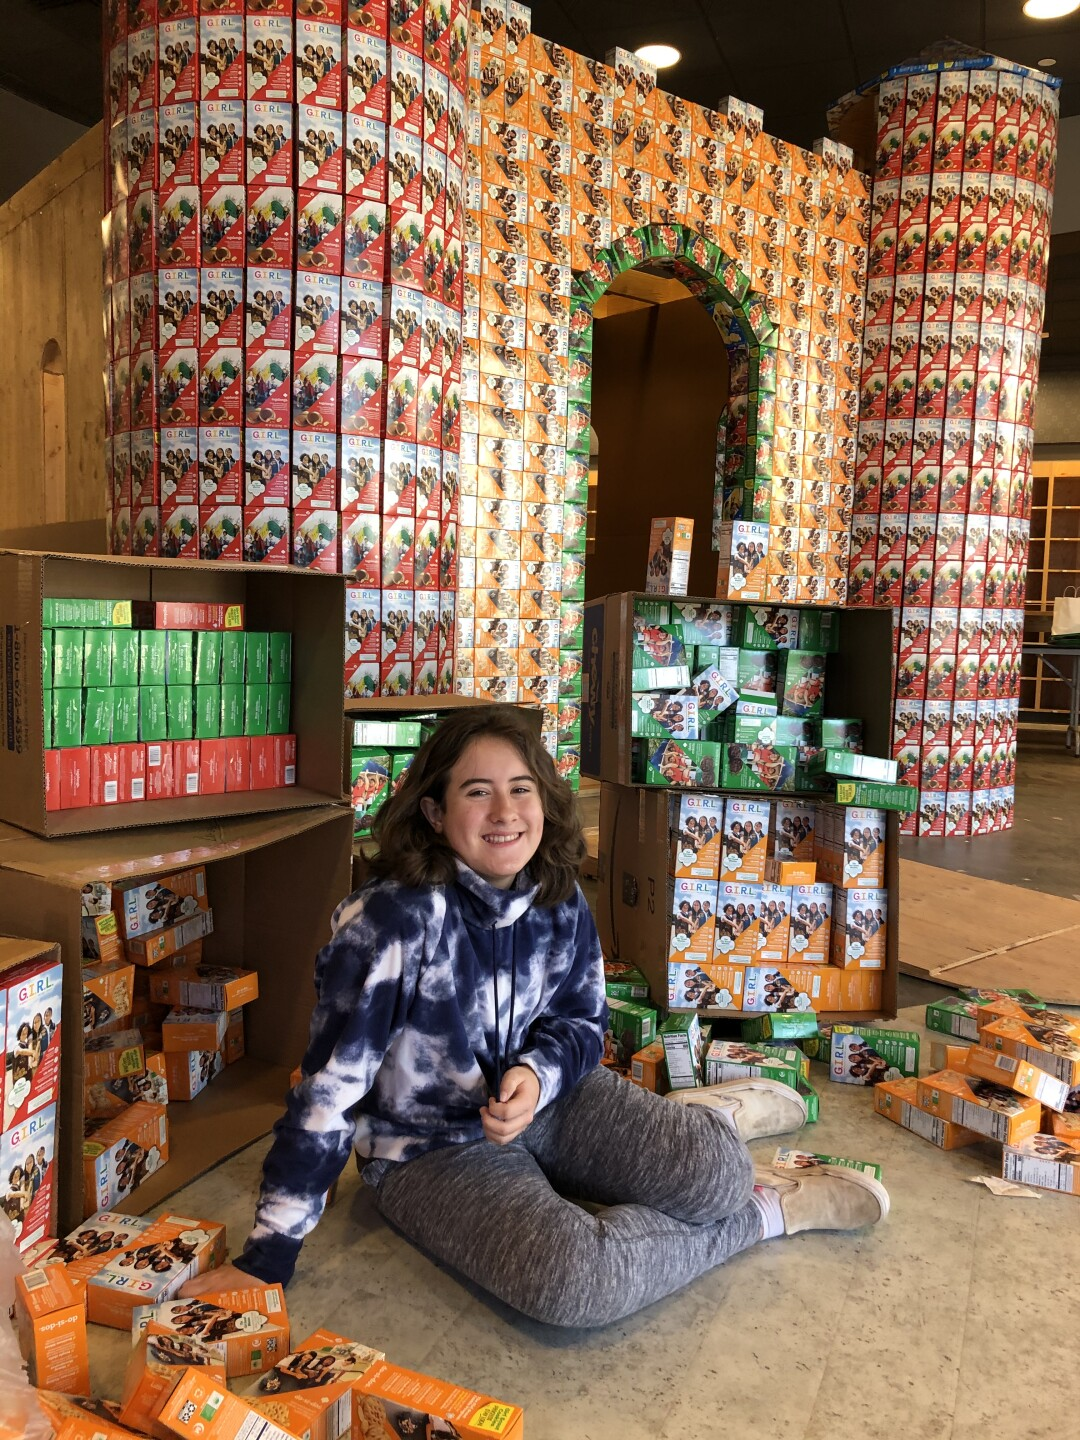 Arizona Girl Scout Cookie House